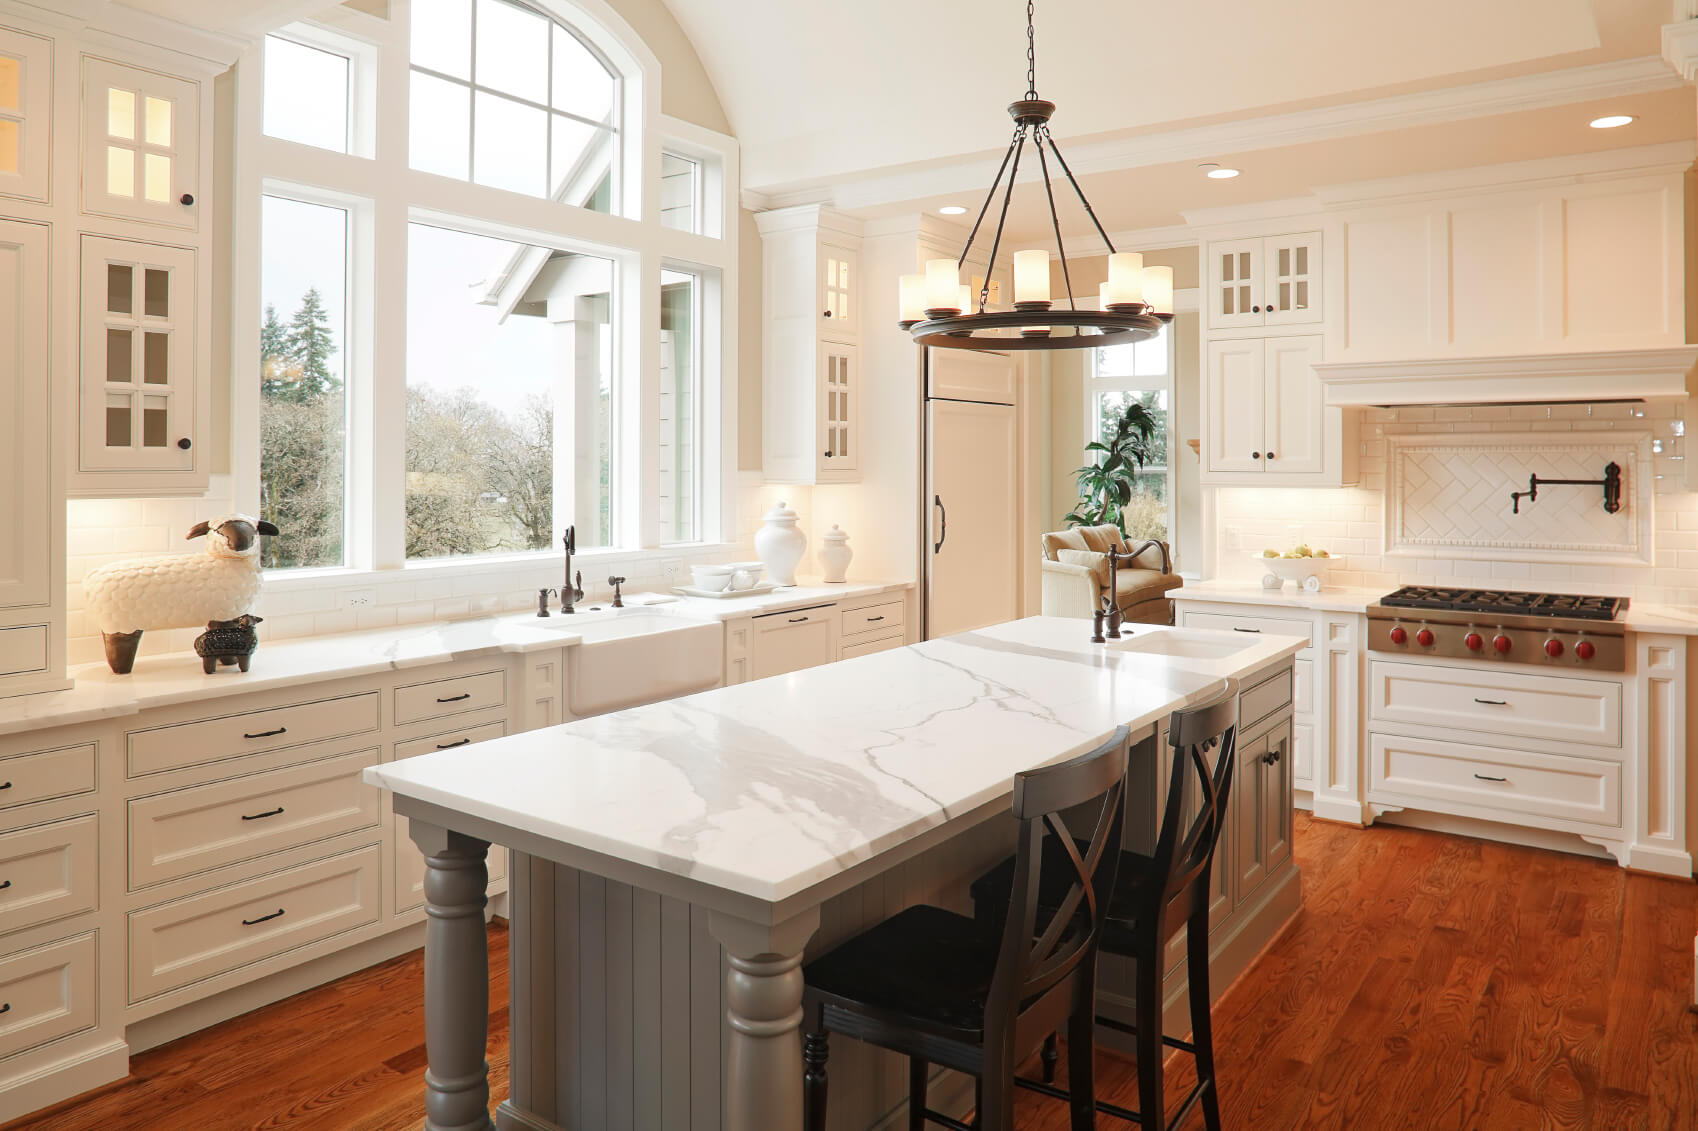 u shaped kitchen designs black kitchen countertops Large ceiling height window affords natural light in this white kitchen centered around large marble topped